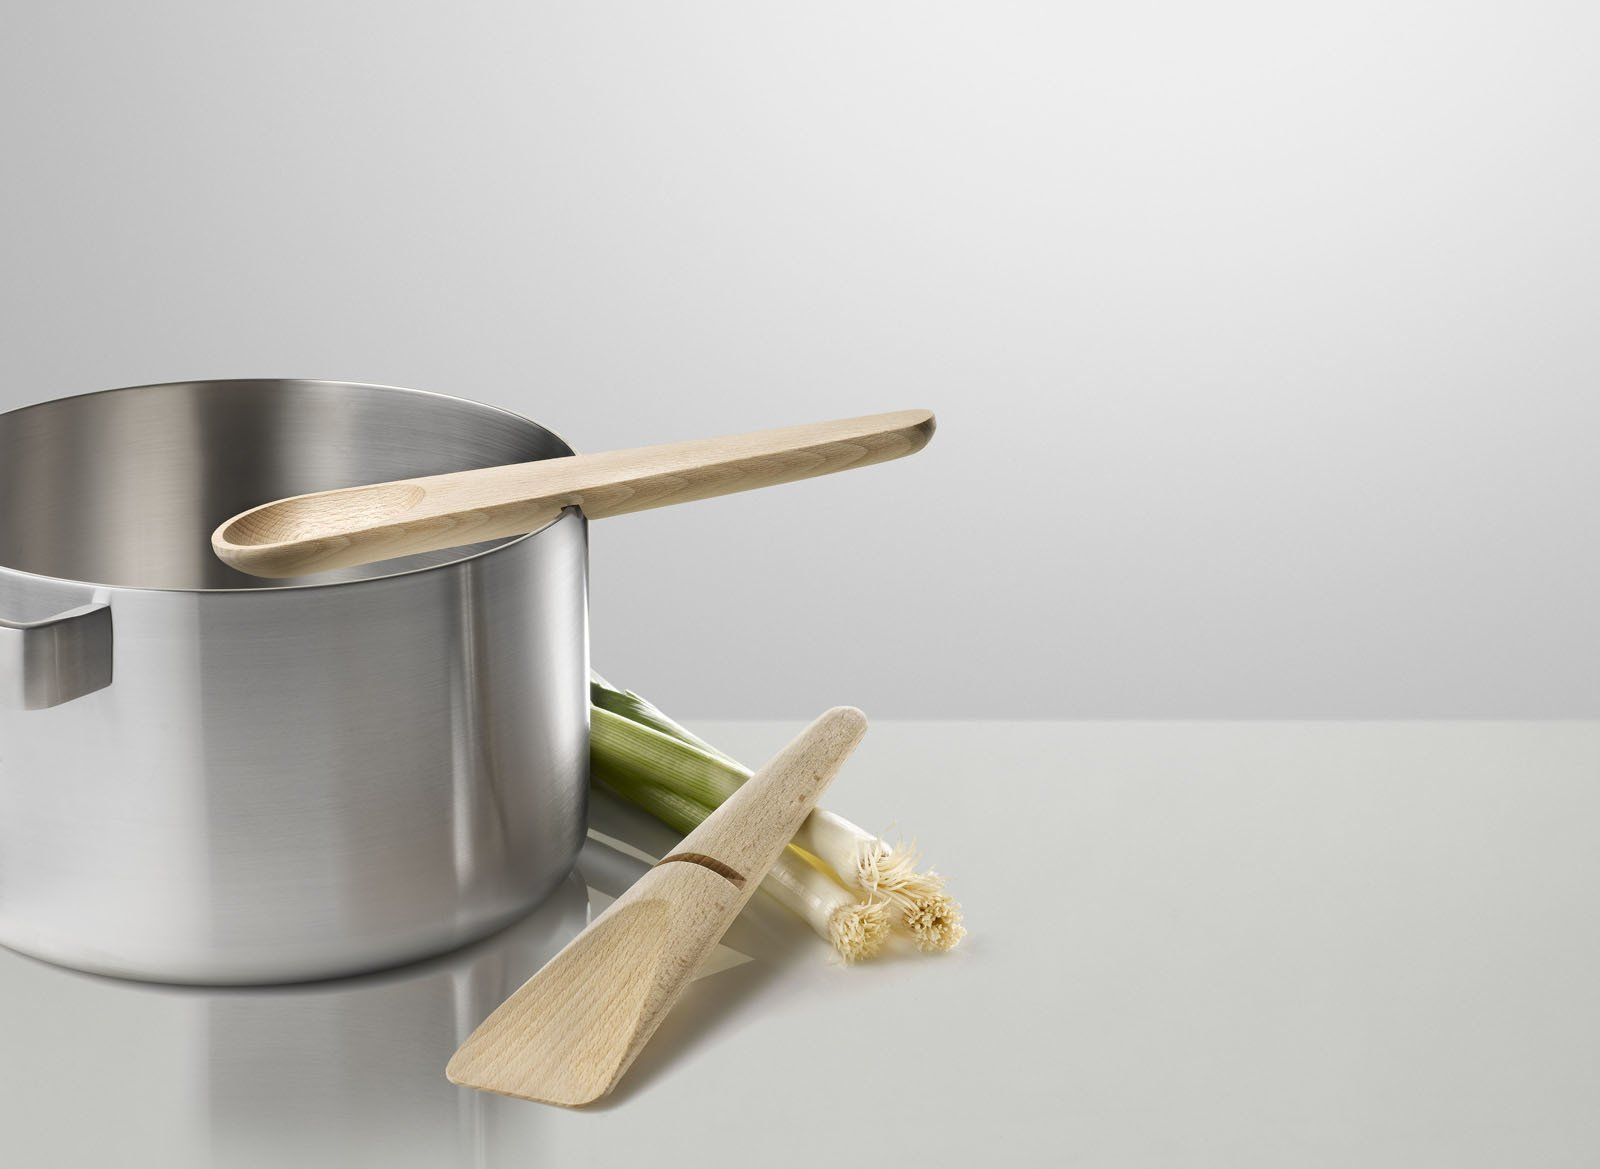 The Hang Around cooking set designed by KiBiSi for Muuto.  Photo 5 of 5 in Hang Around and Toss Around